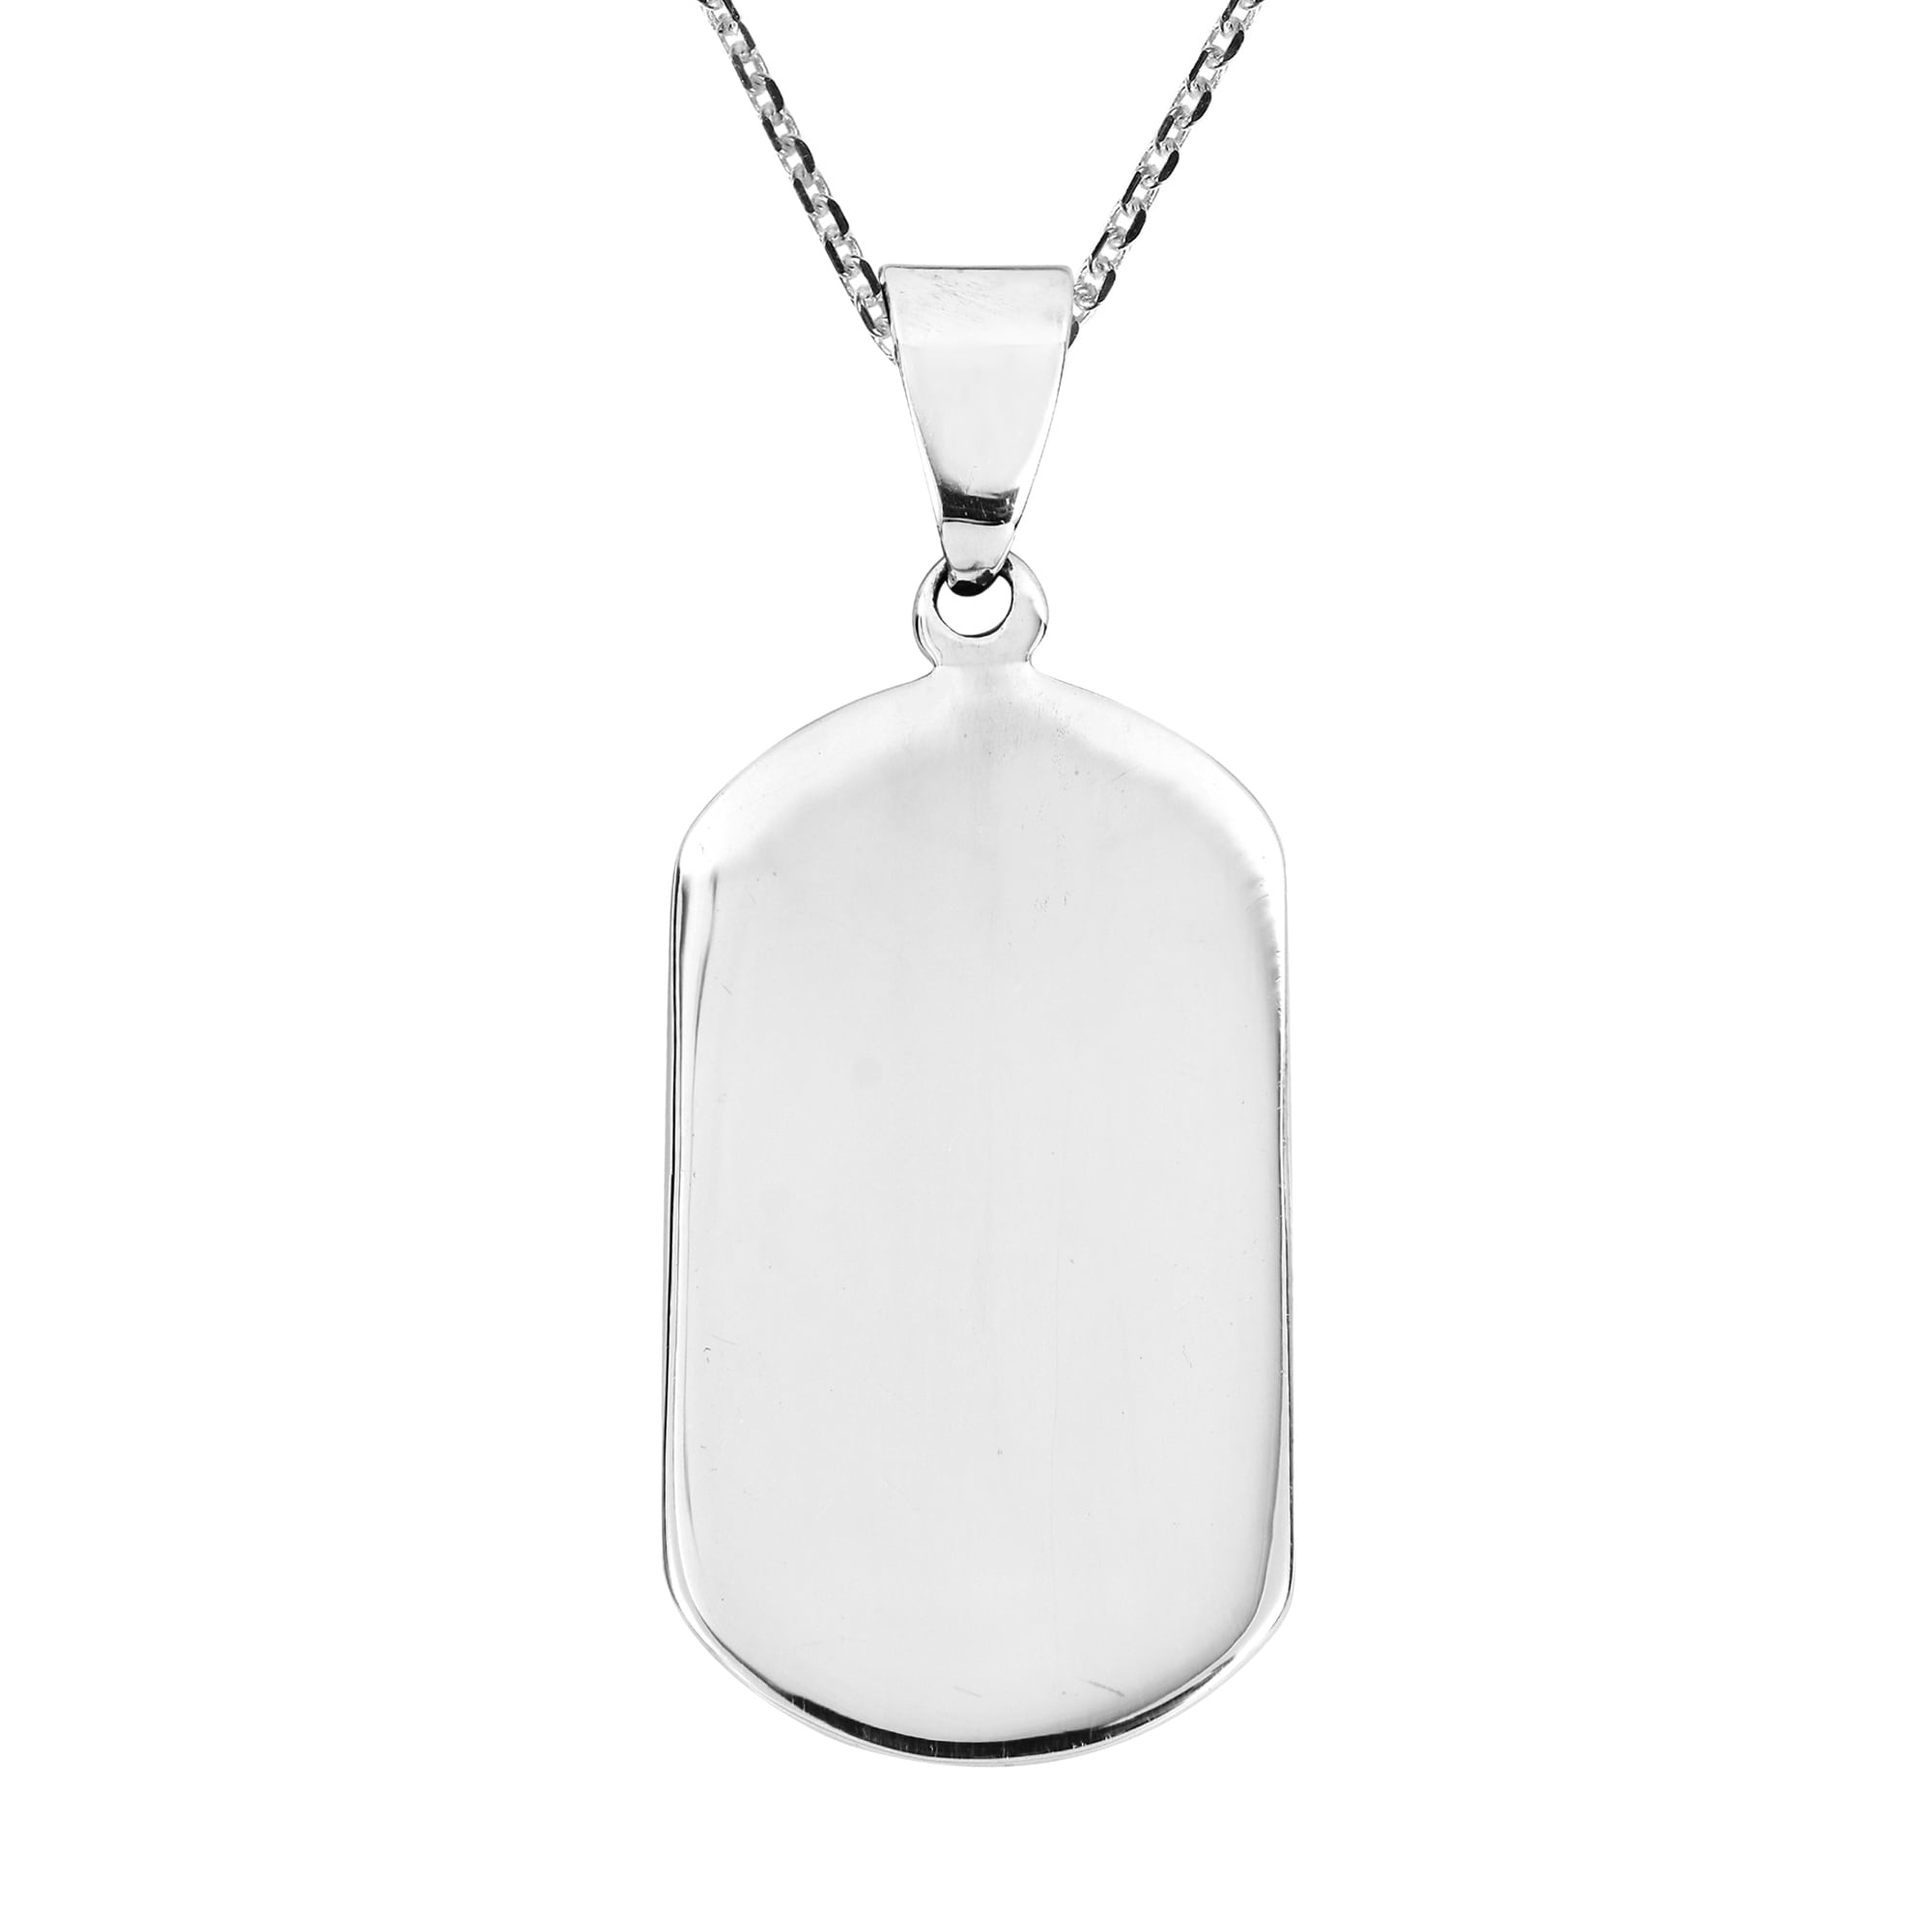 Shop handmade be yourself 925 sterling silver dog tag pendant shop handmade be yourself 925 sterling silver dog tag pendant necklace thailand on sale free shipping on orders over 45 overstock 6790134 solutioingenieria Image collections